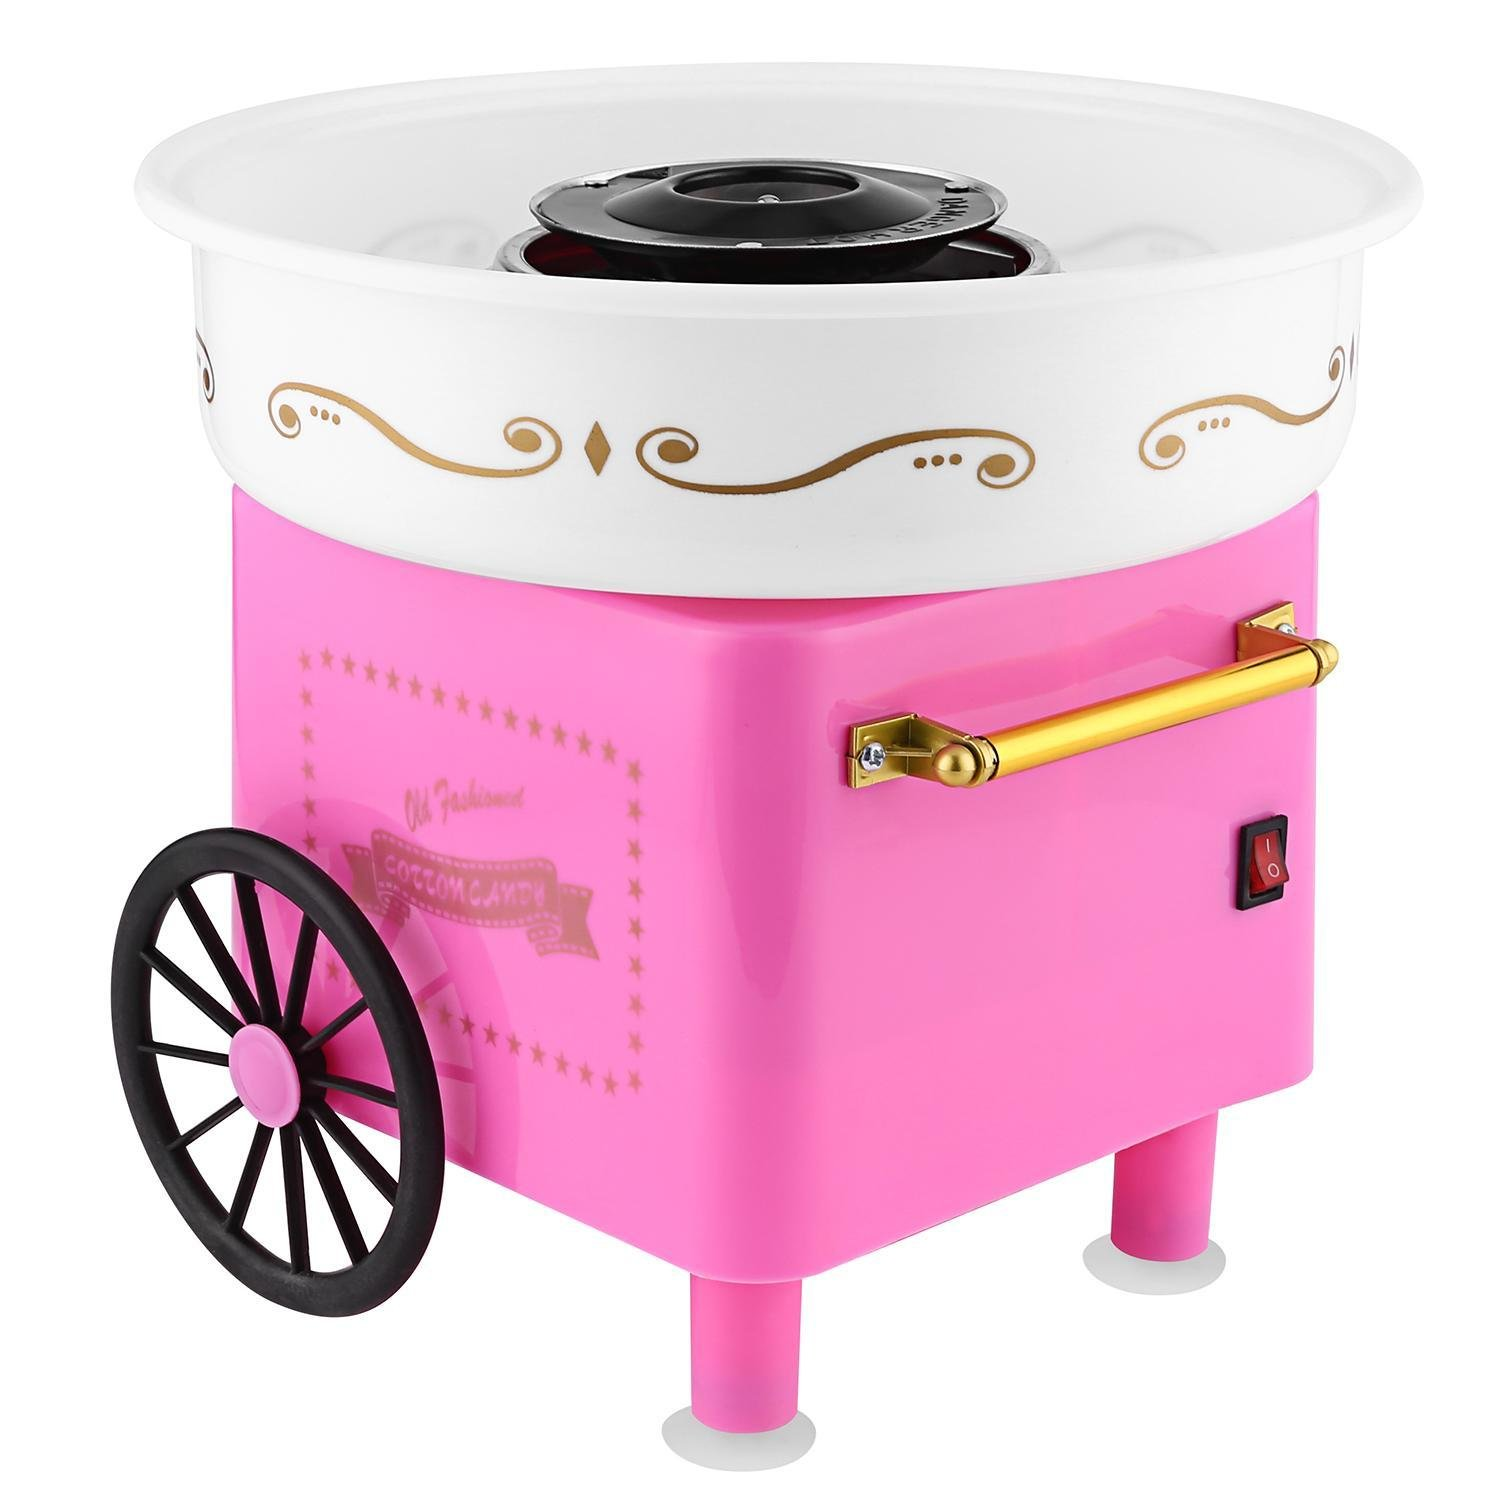 Goodfans Family Party Pink Stainless Steel Safe Cute Casual Cotton Candy Machine Homemade Sweets for Birthday Parties (Pink, One size) by Goodfans